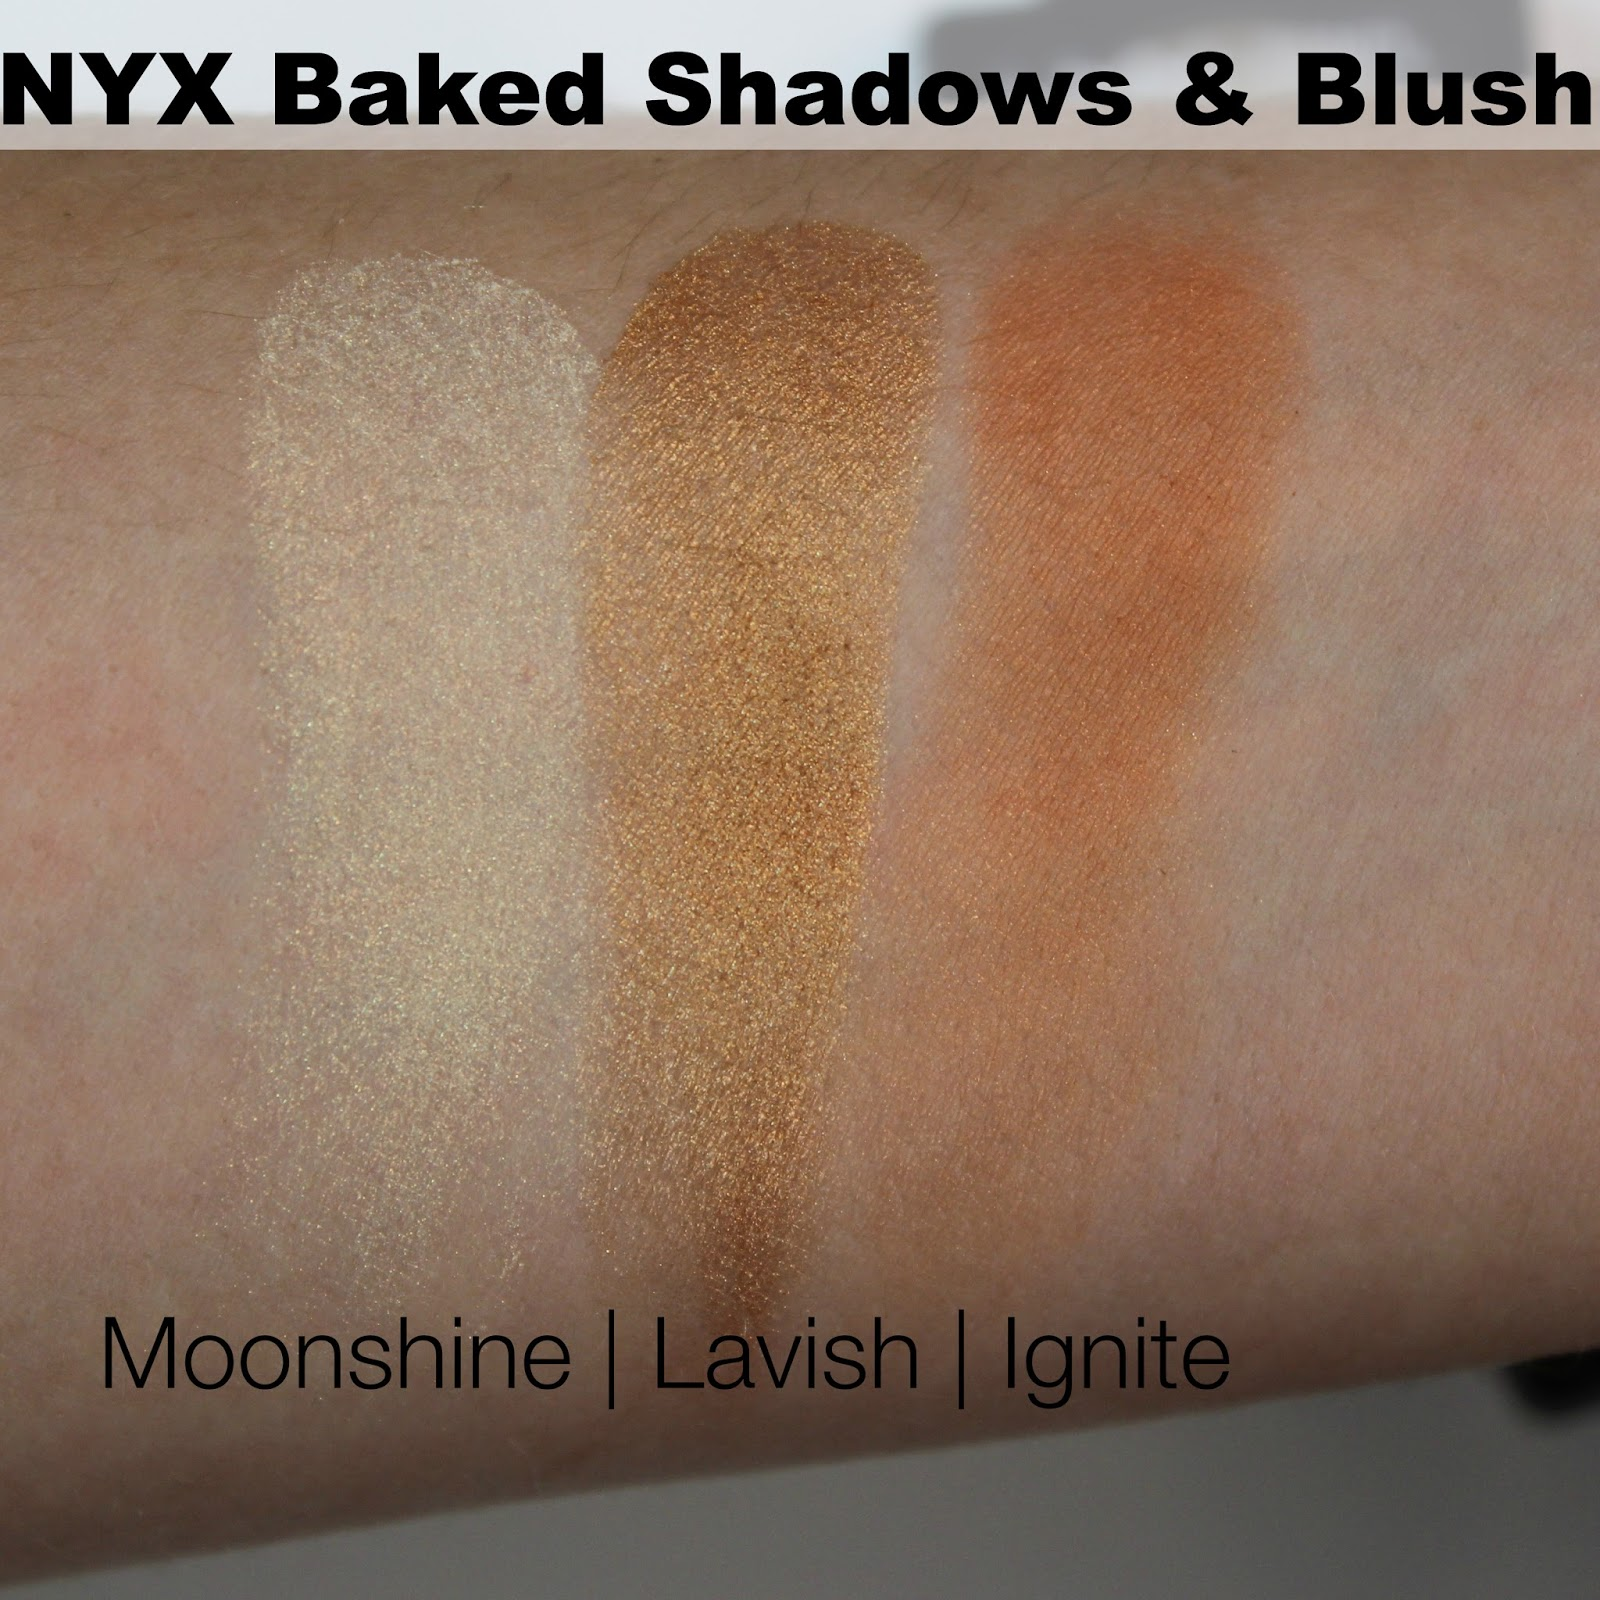 Nyx Baked Blush Ignite Nyx Baked Shadows/blush in